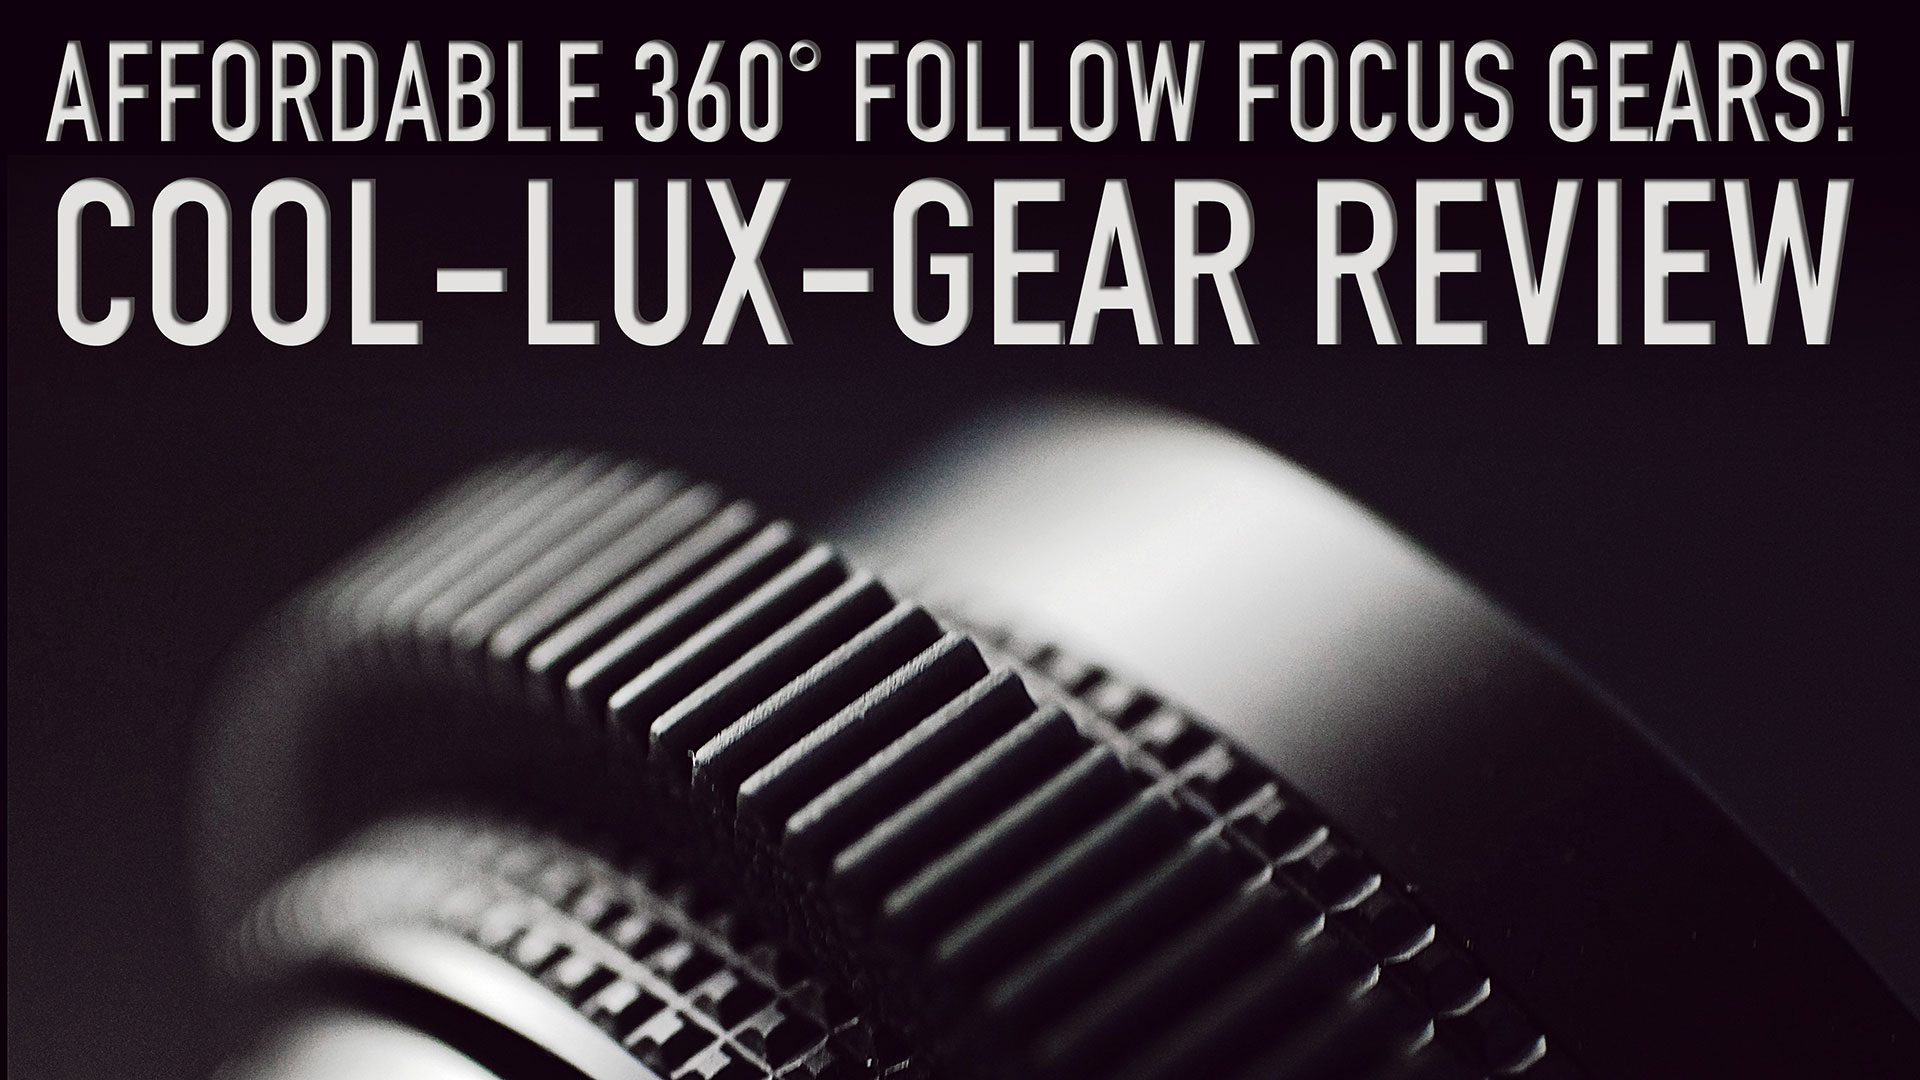 Affordable 360° Follow Focus Gears! | COOL-LUX-GEAR Review